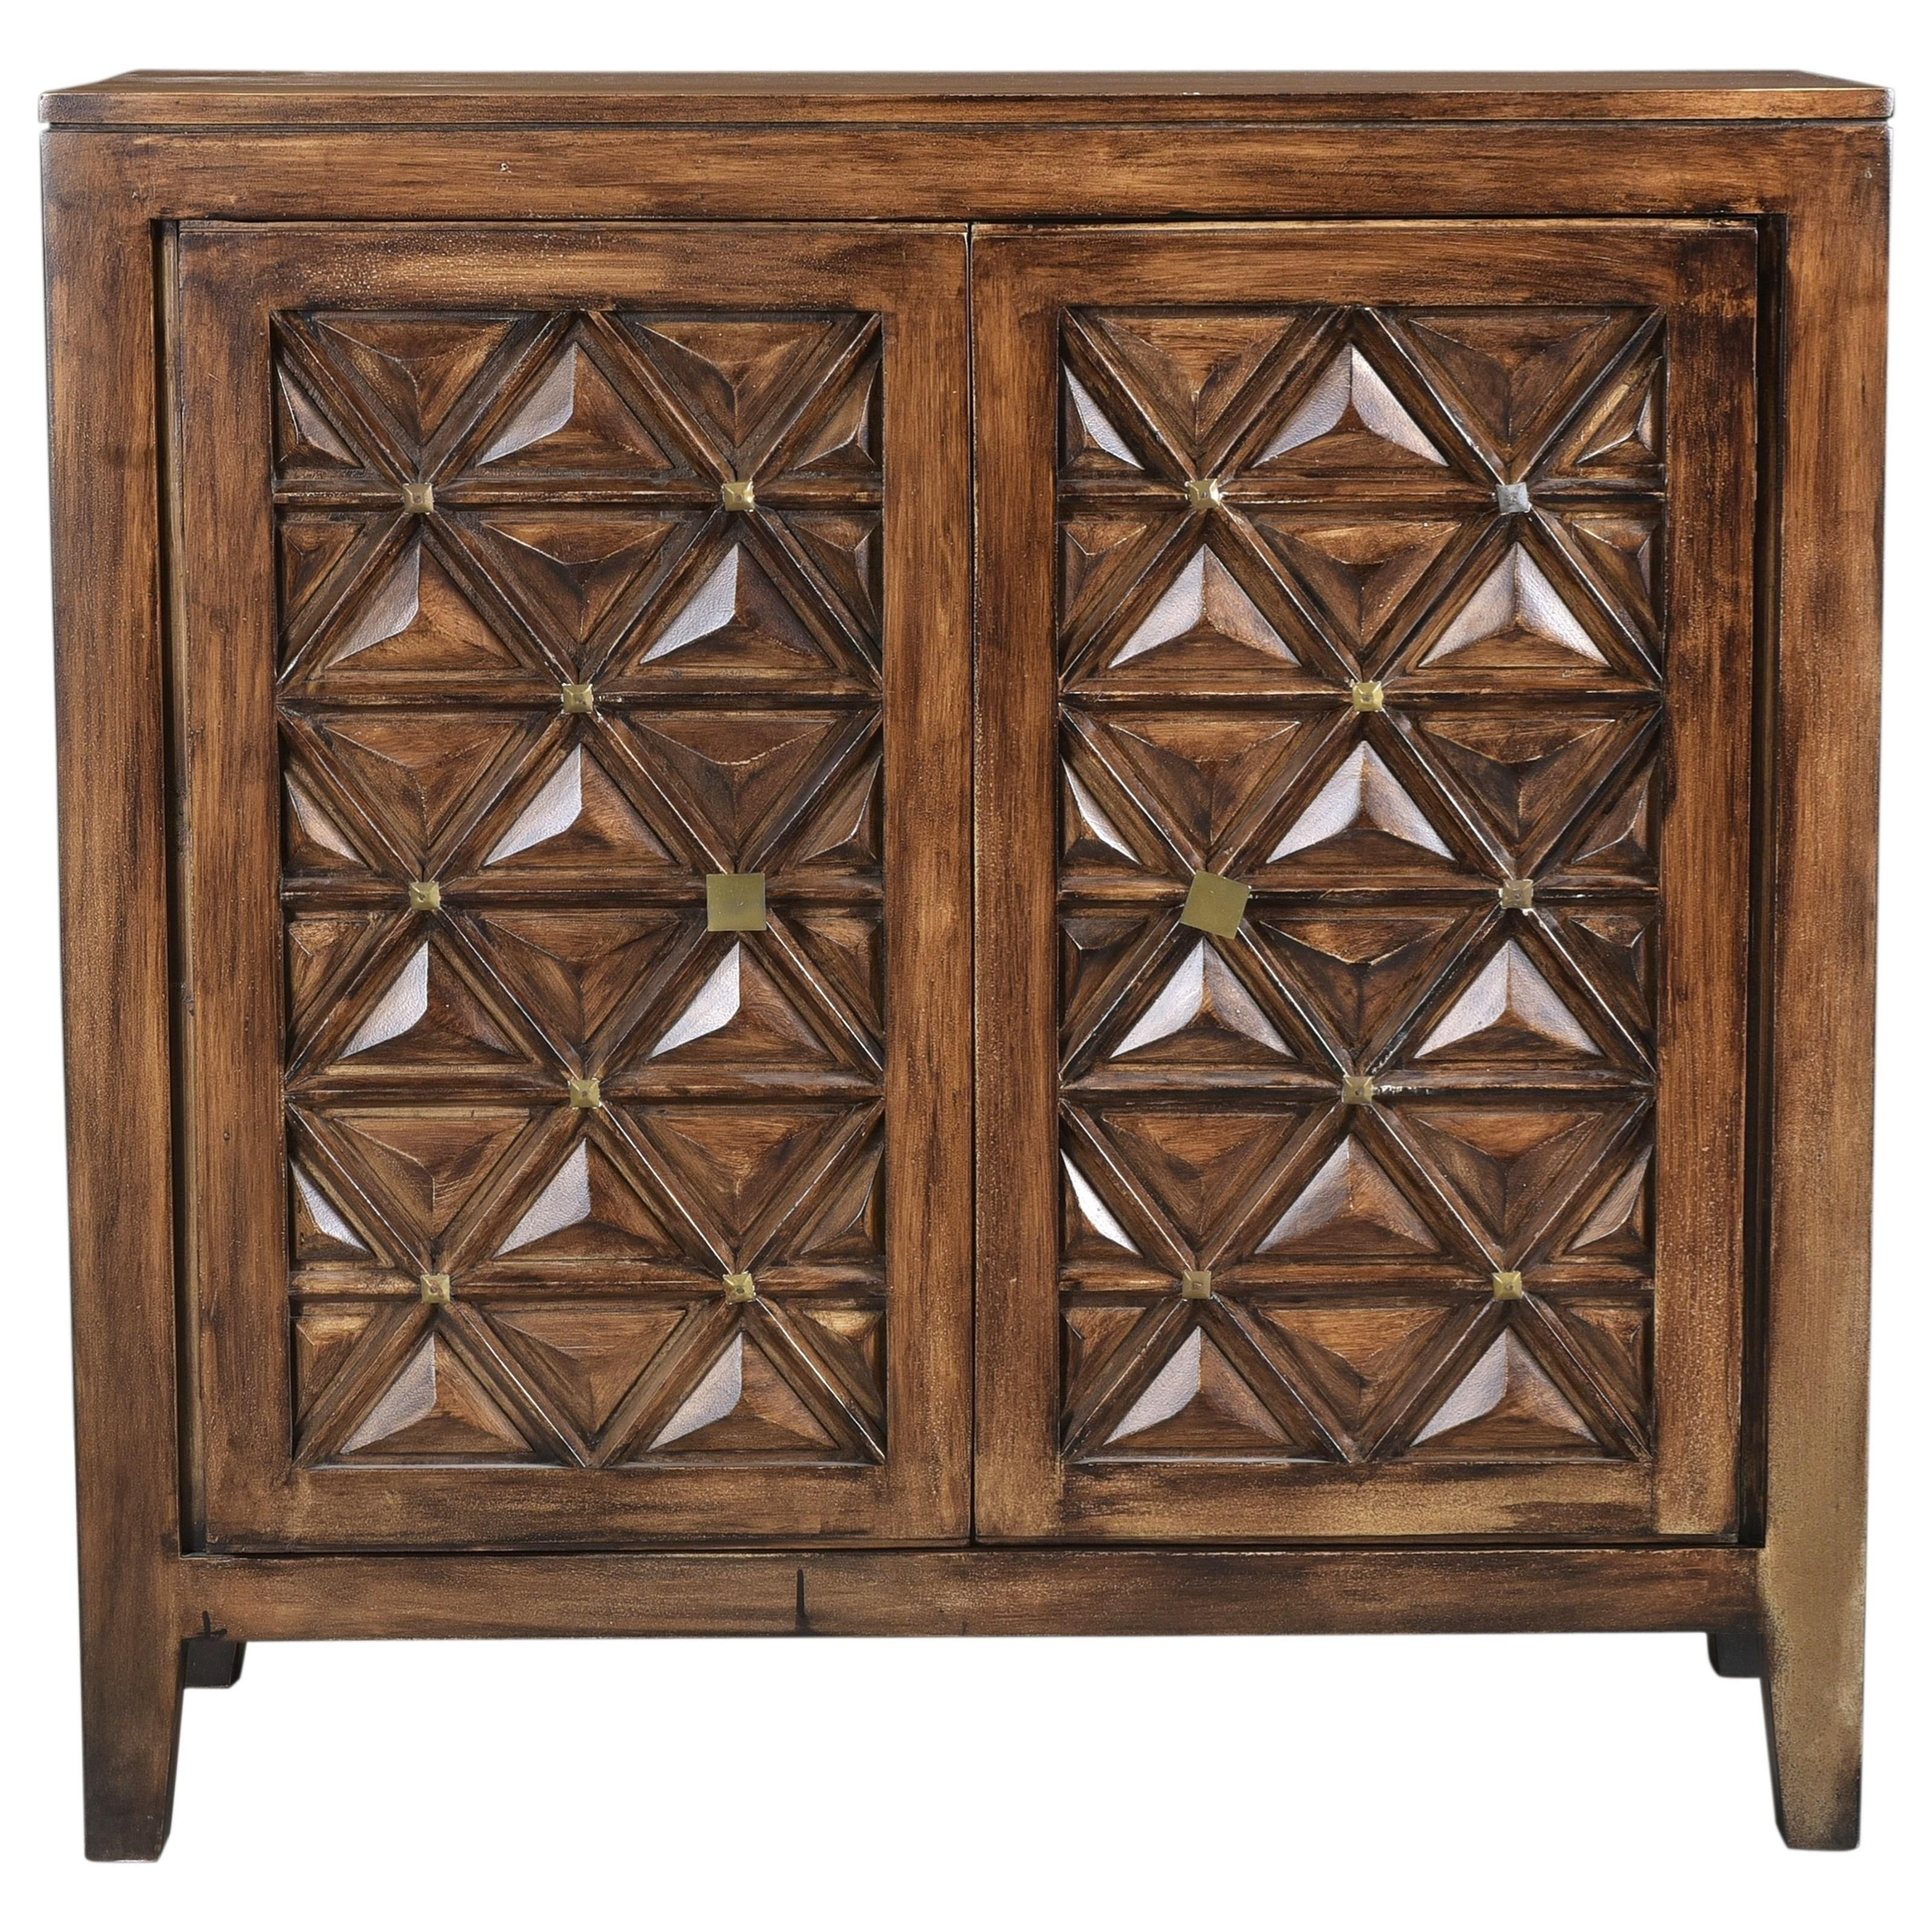 Mid-Century Modern Accent Cabinet with Magnetic Door Latches